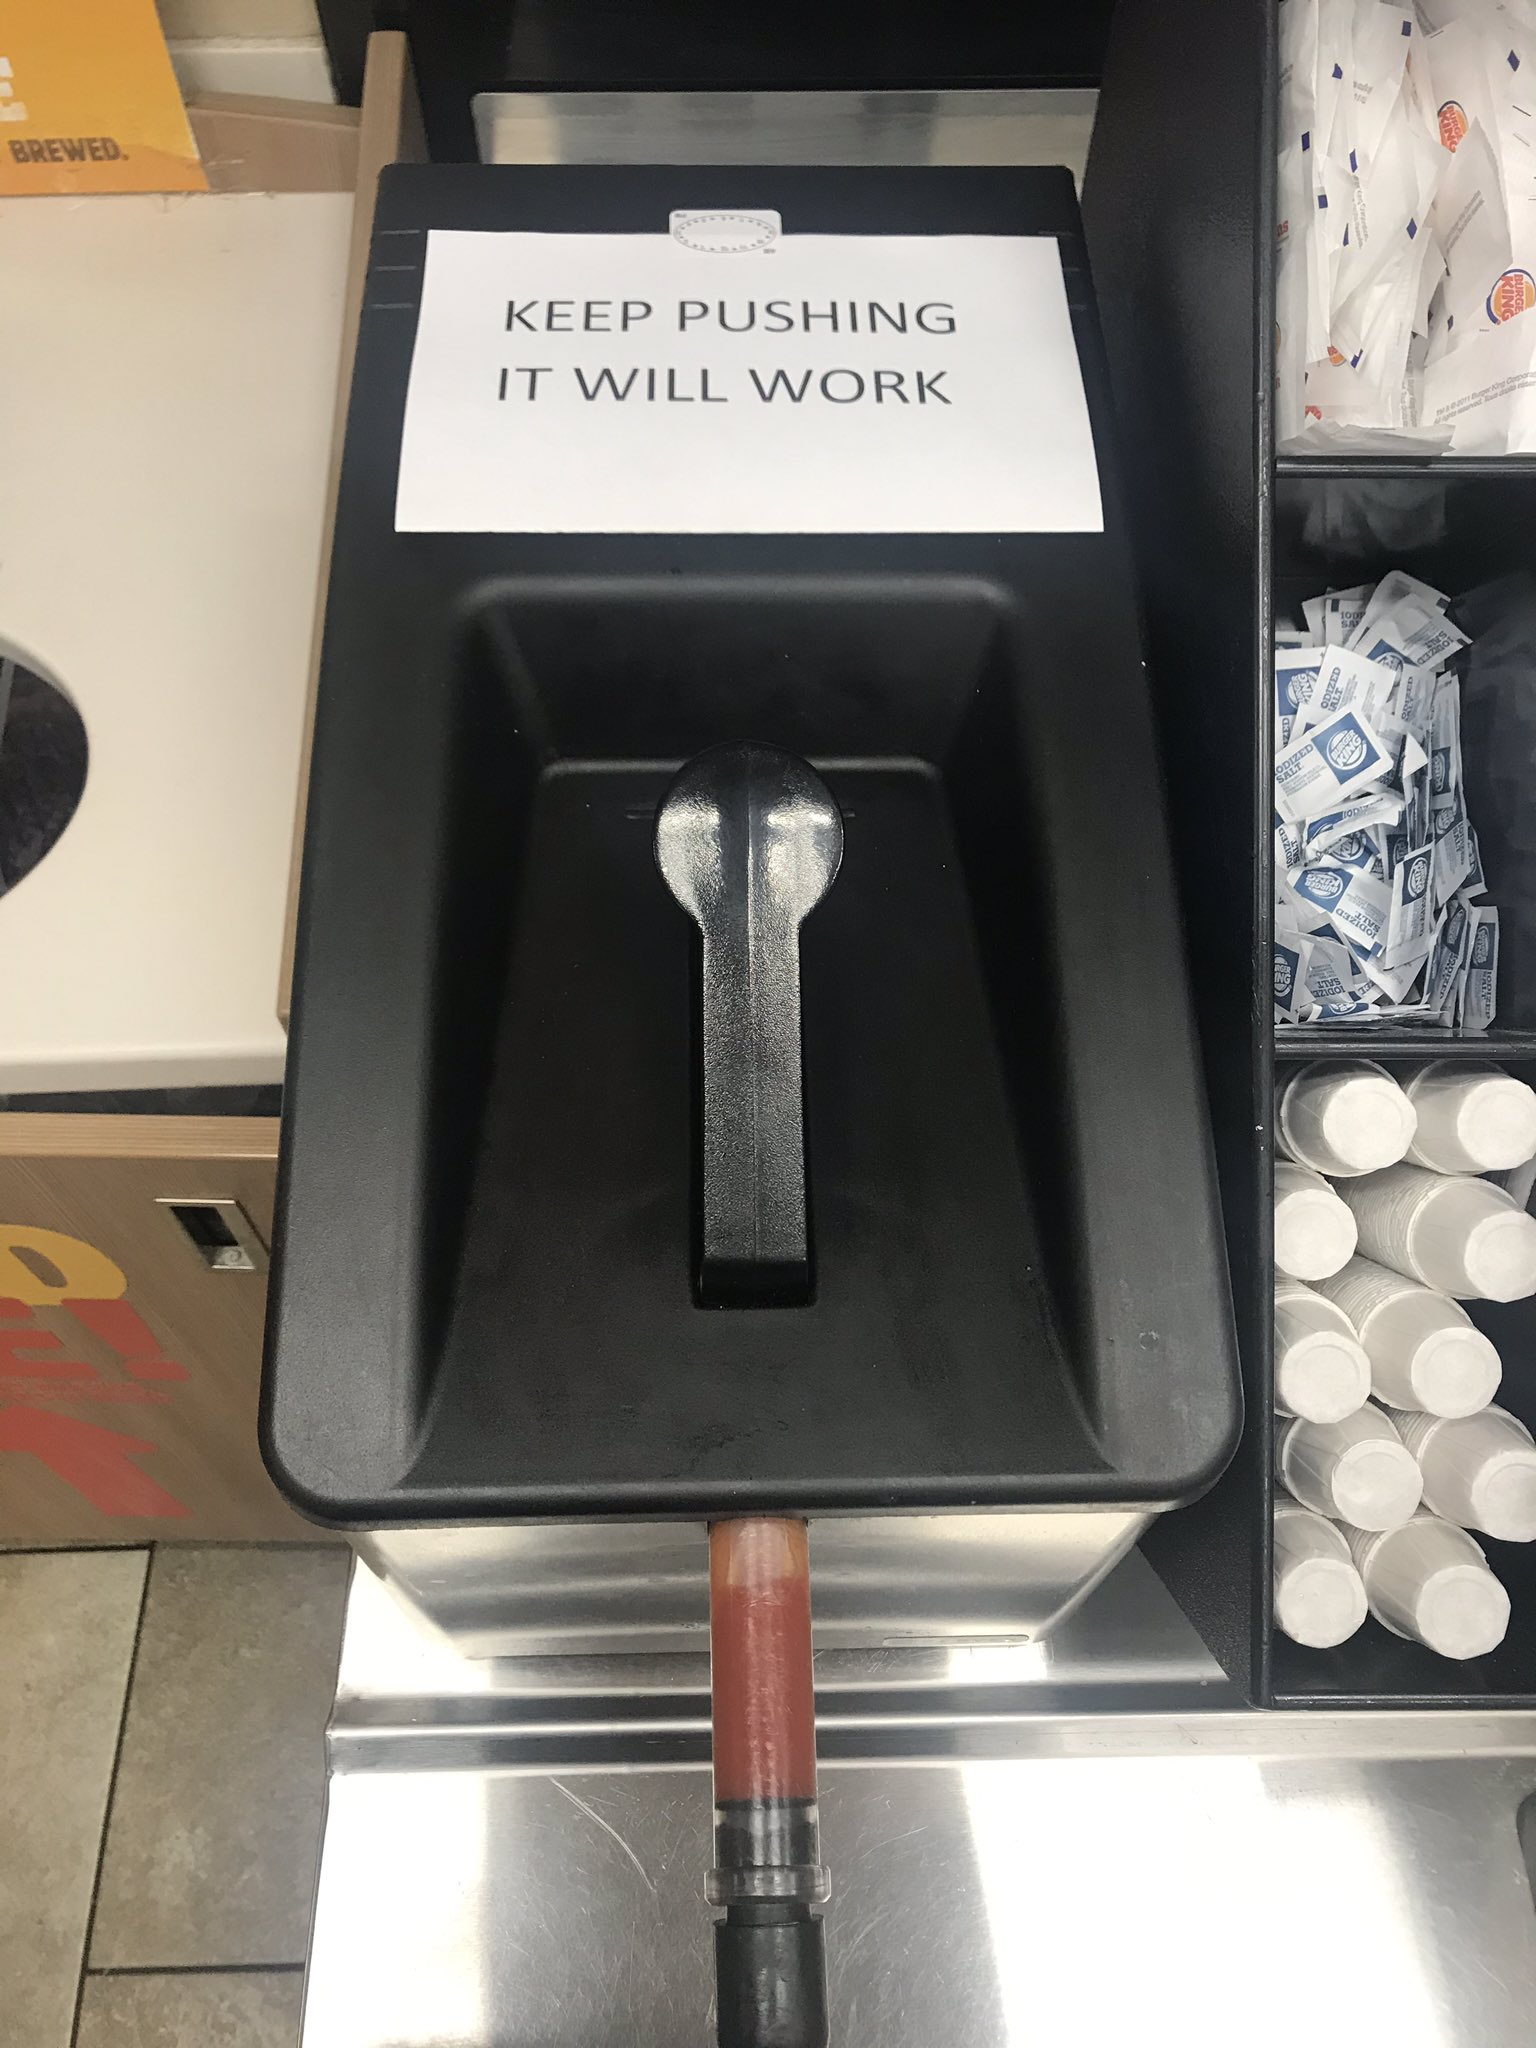 [Image] A surprisingly inspirational ketchup dispenser